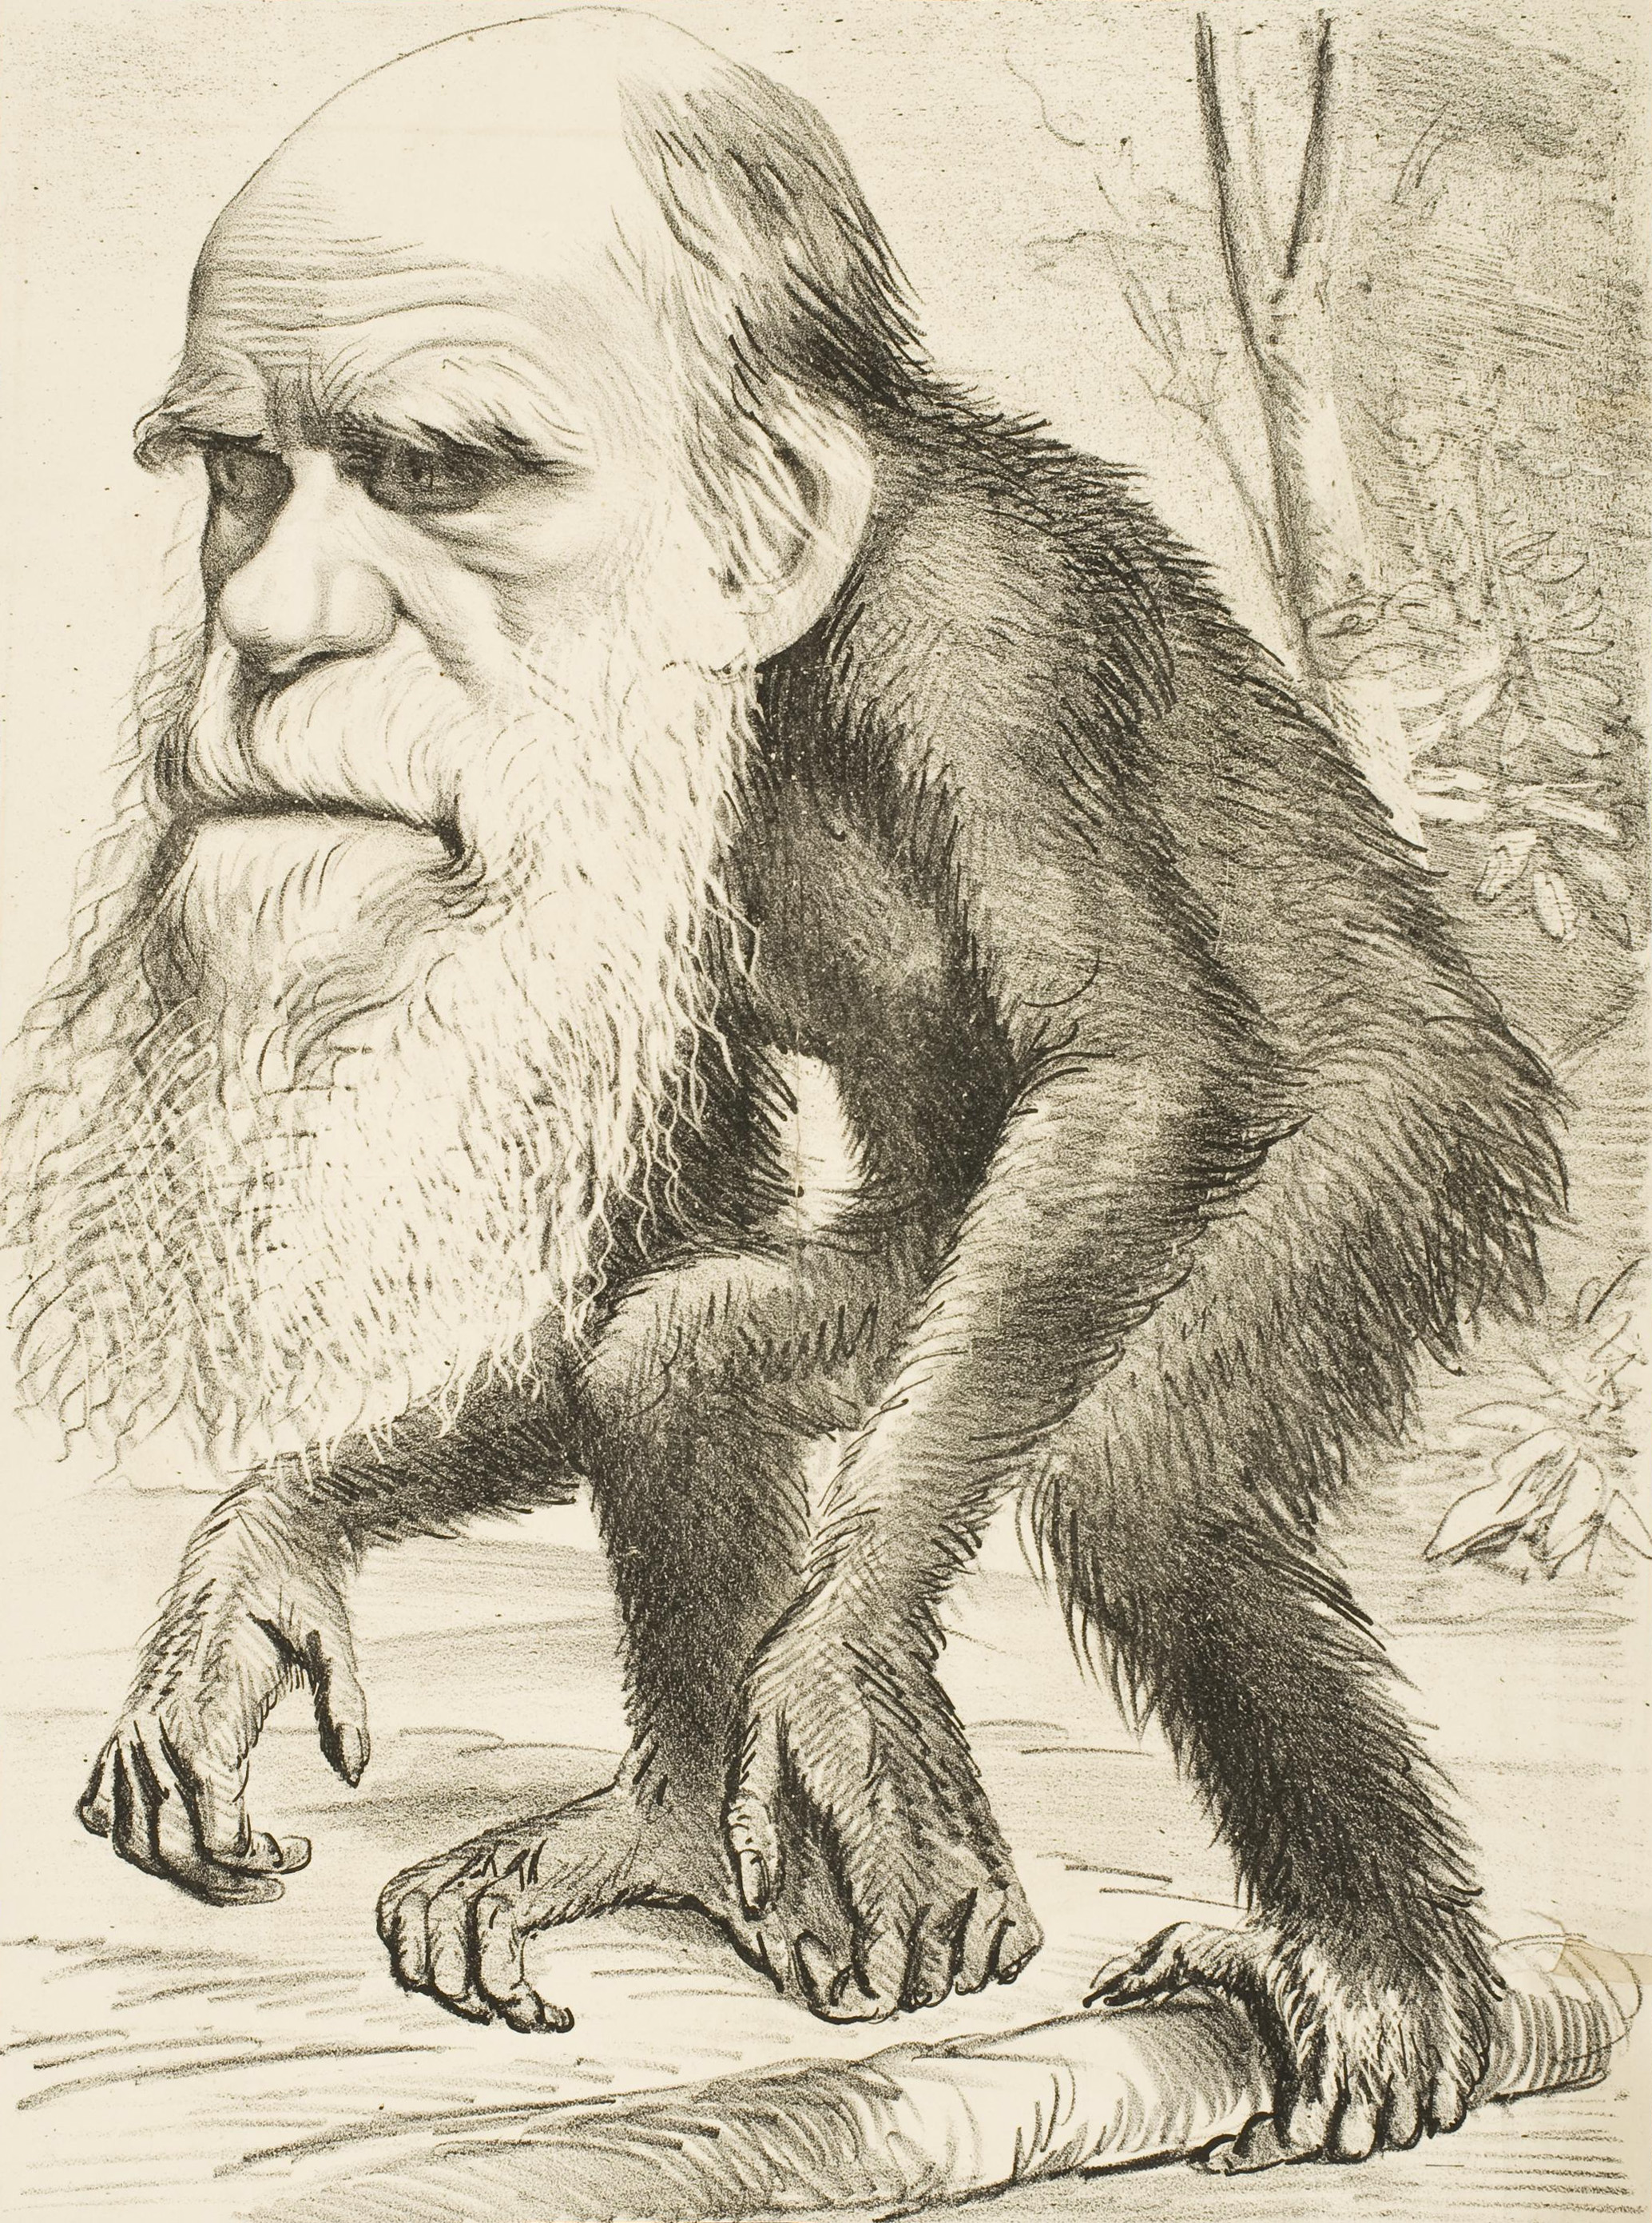 Cartoon of Darwin as an ape (editorial from 1871)